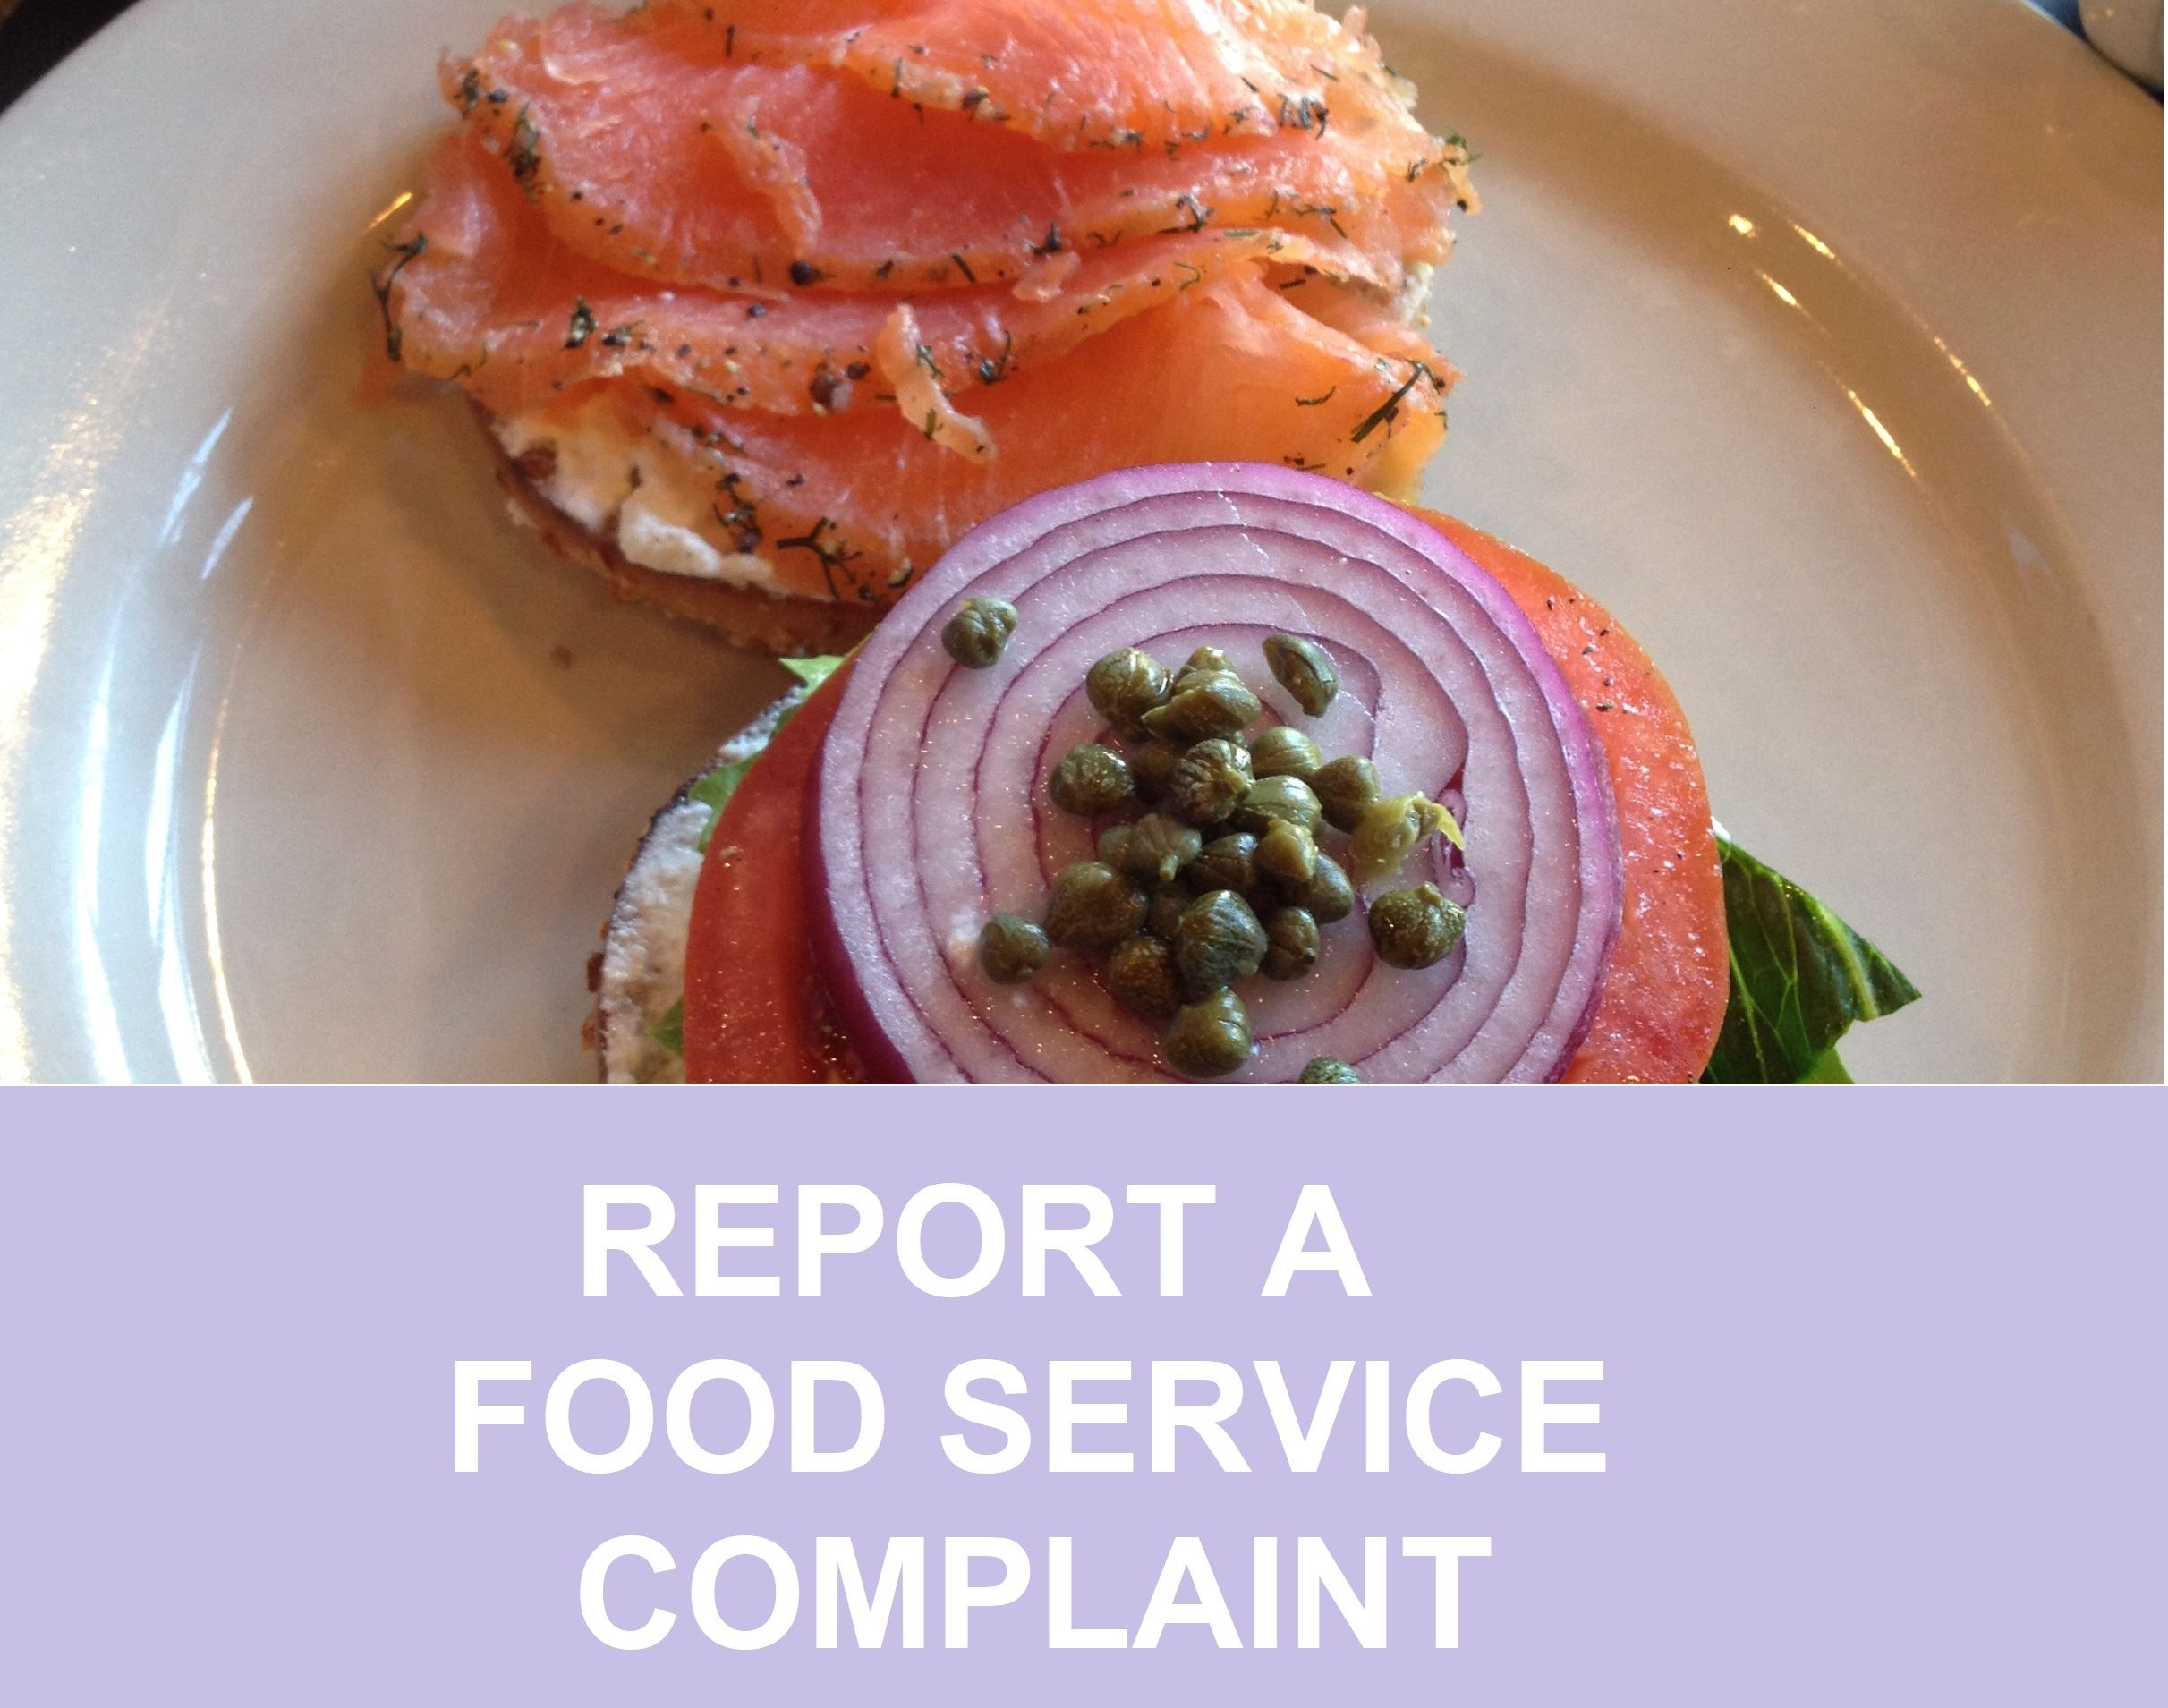 REPORT A COMPLAINT Opens in new window